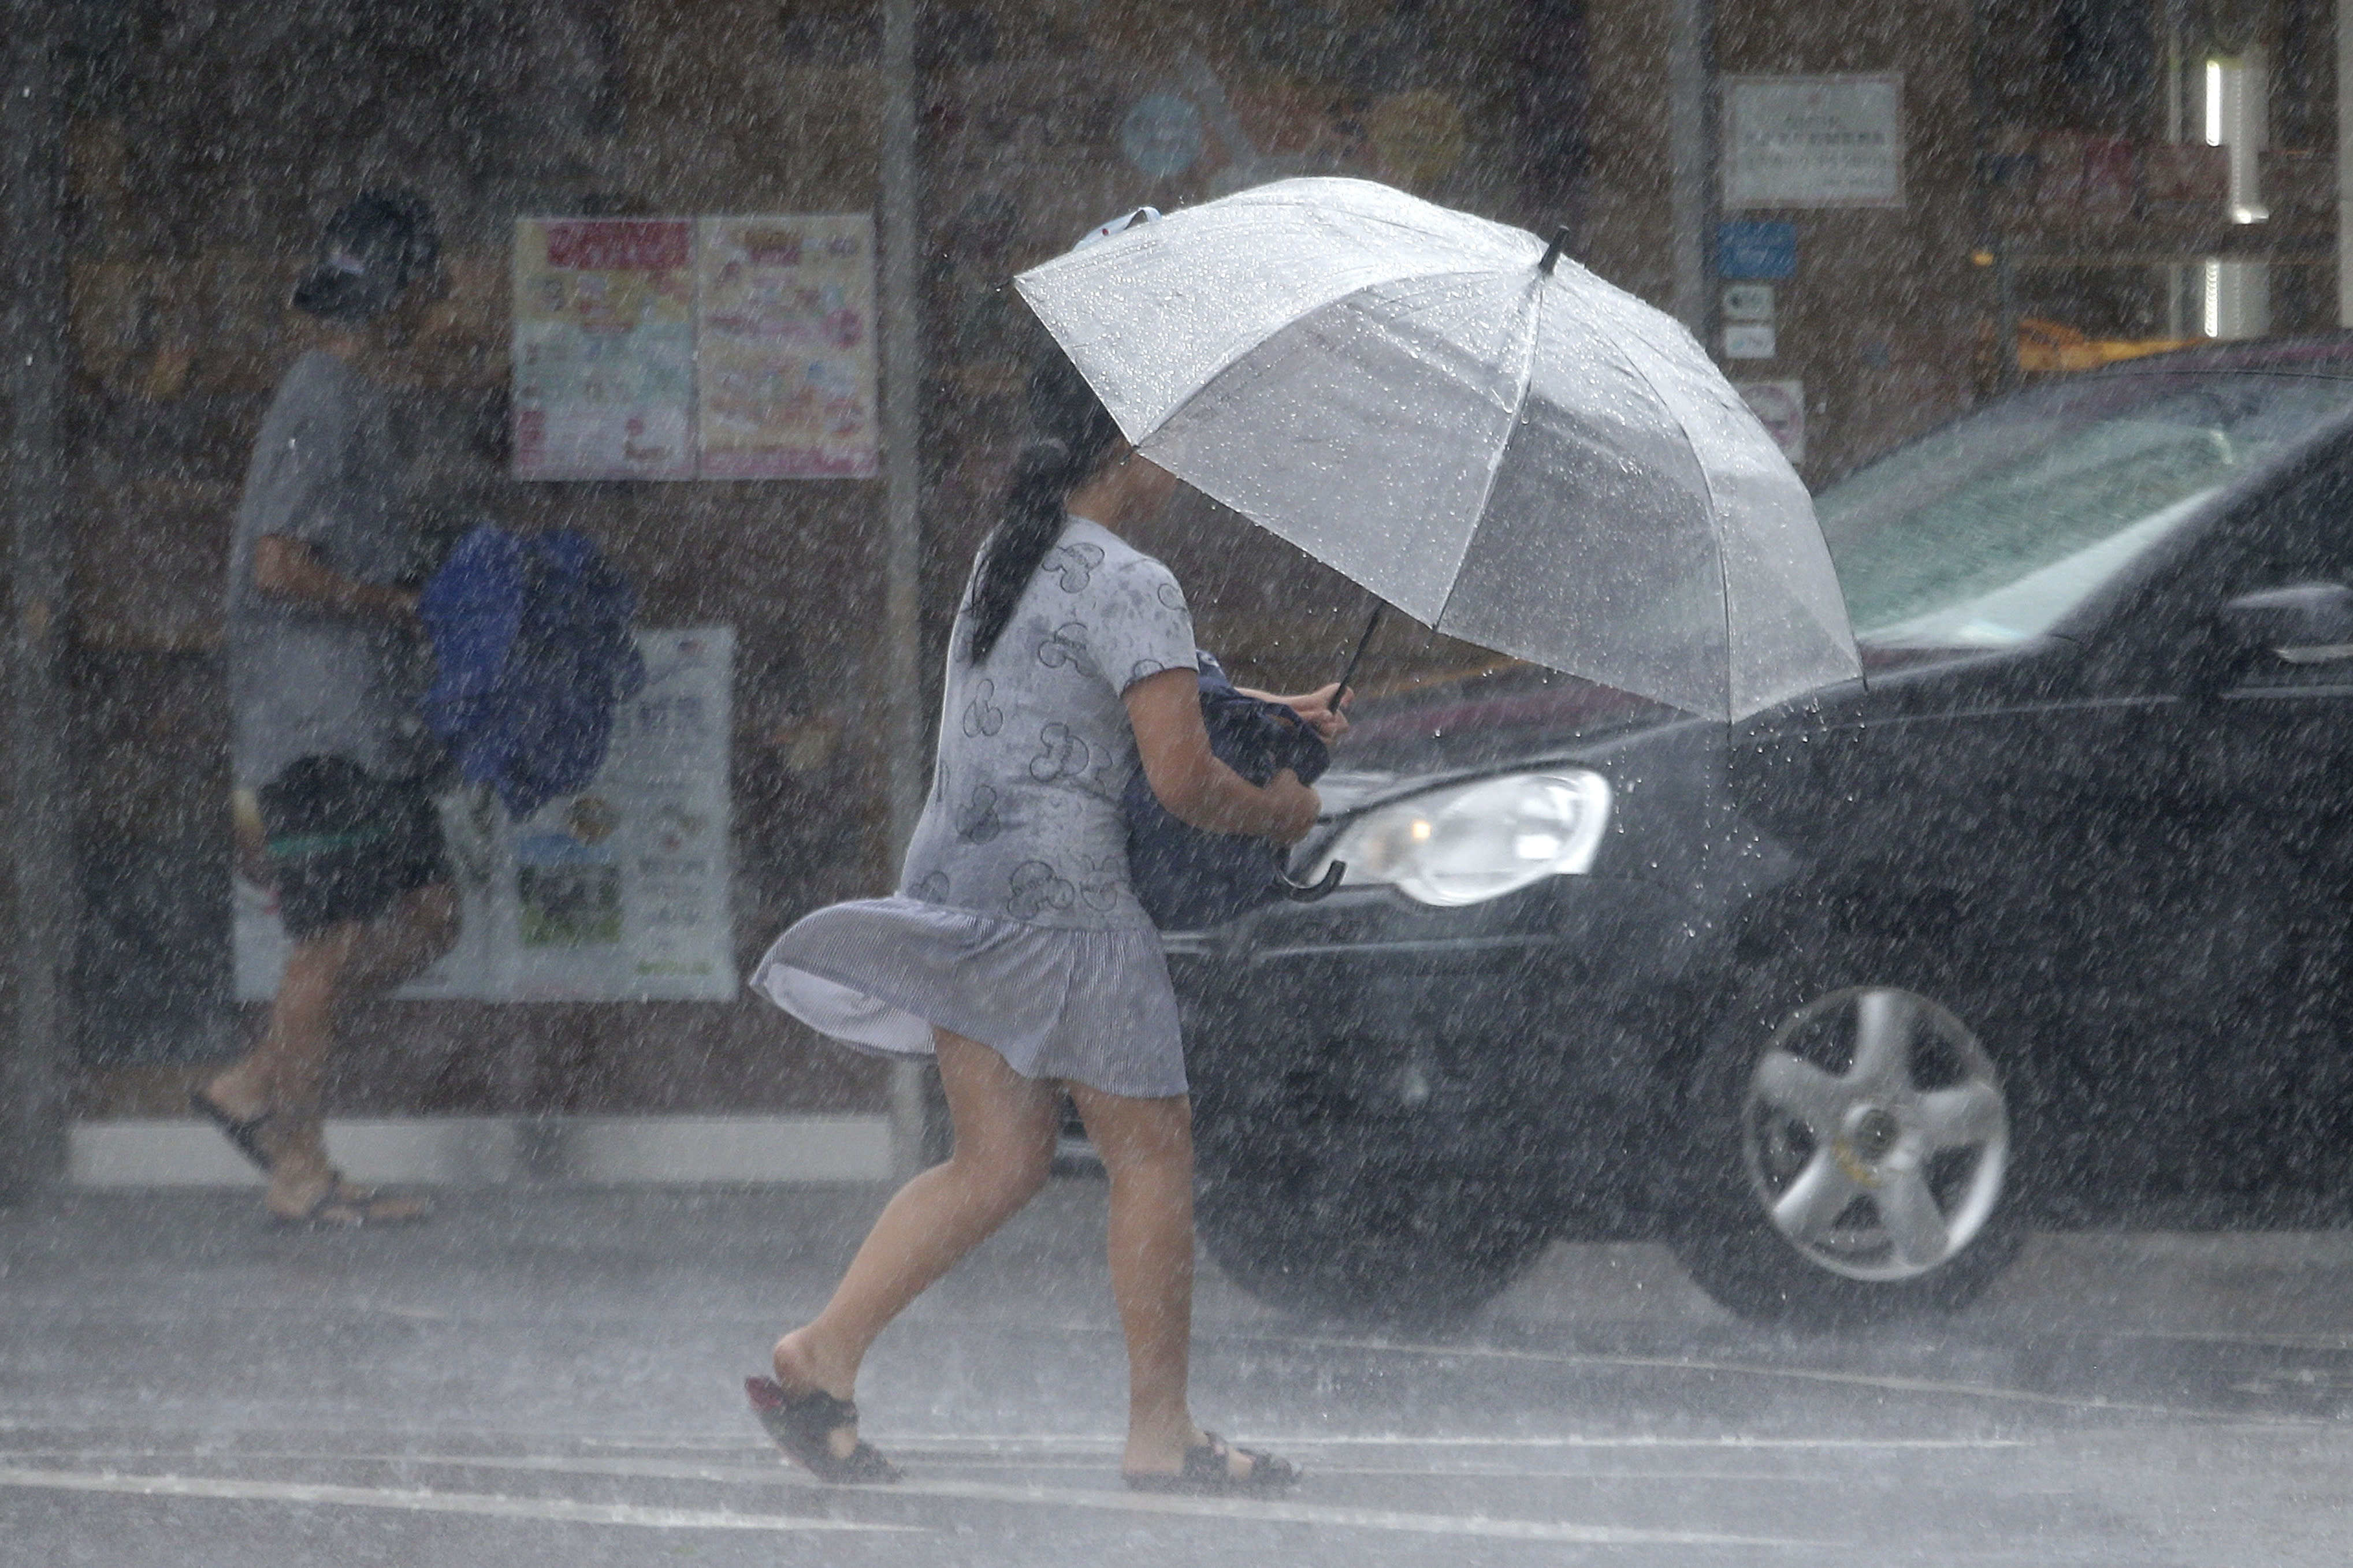 A Taiwanese woman makes her way against powerful gusts of wind generated by typhoon Lekima in Taipei, Taiwan, Friday, Aug. 9, 2019. (AP Photo/Chiang Ying-ying)